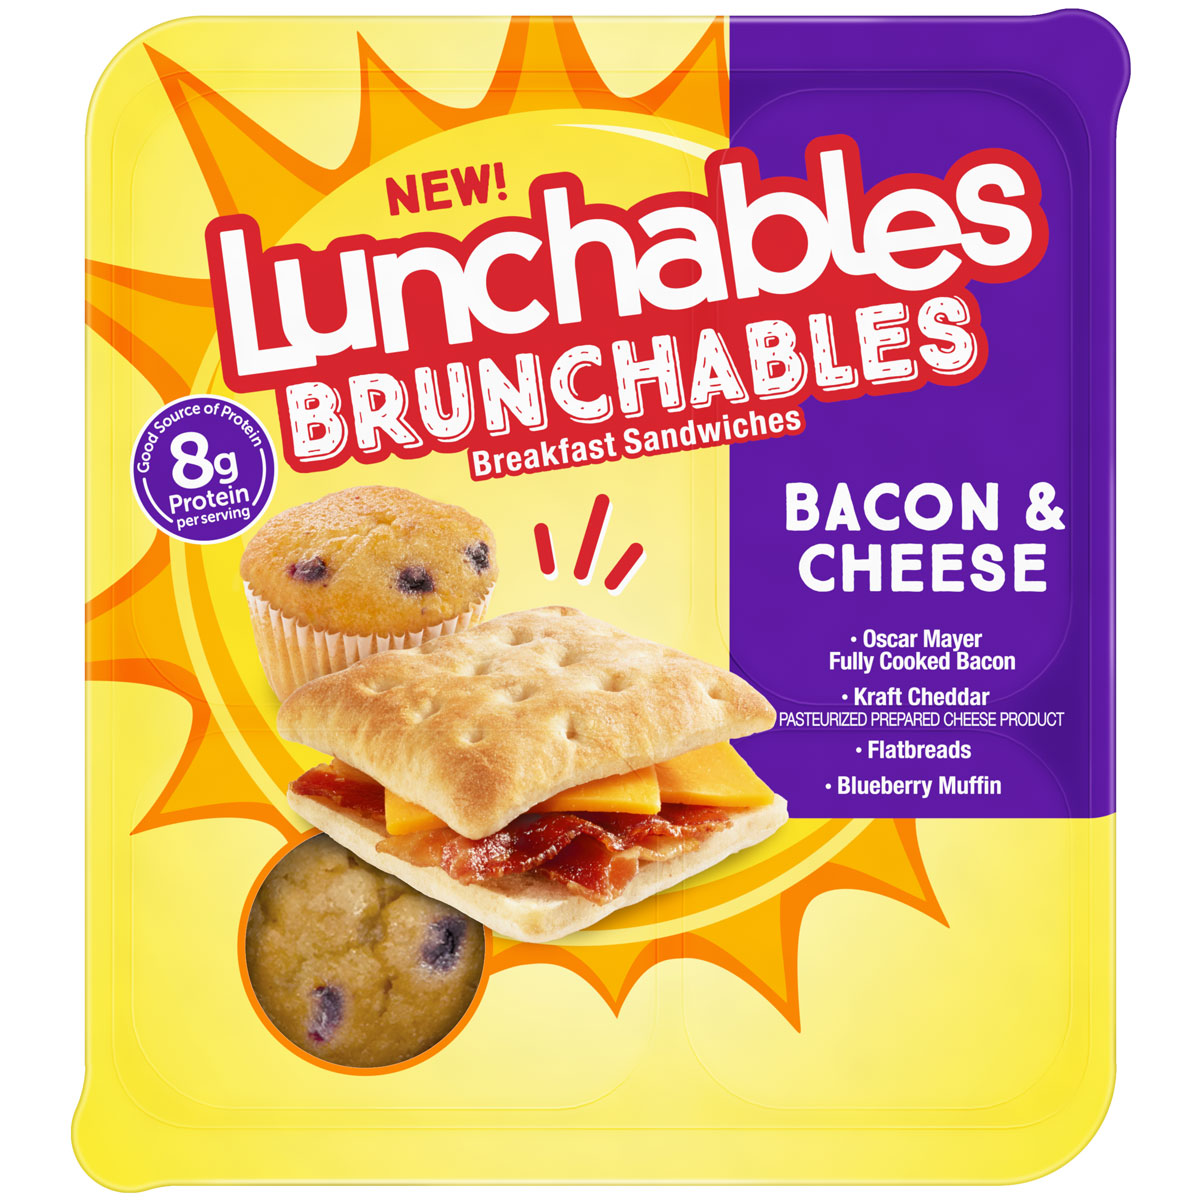 Brunchables